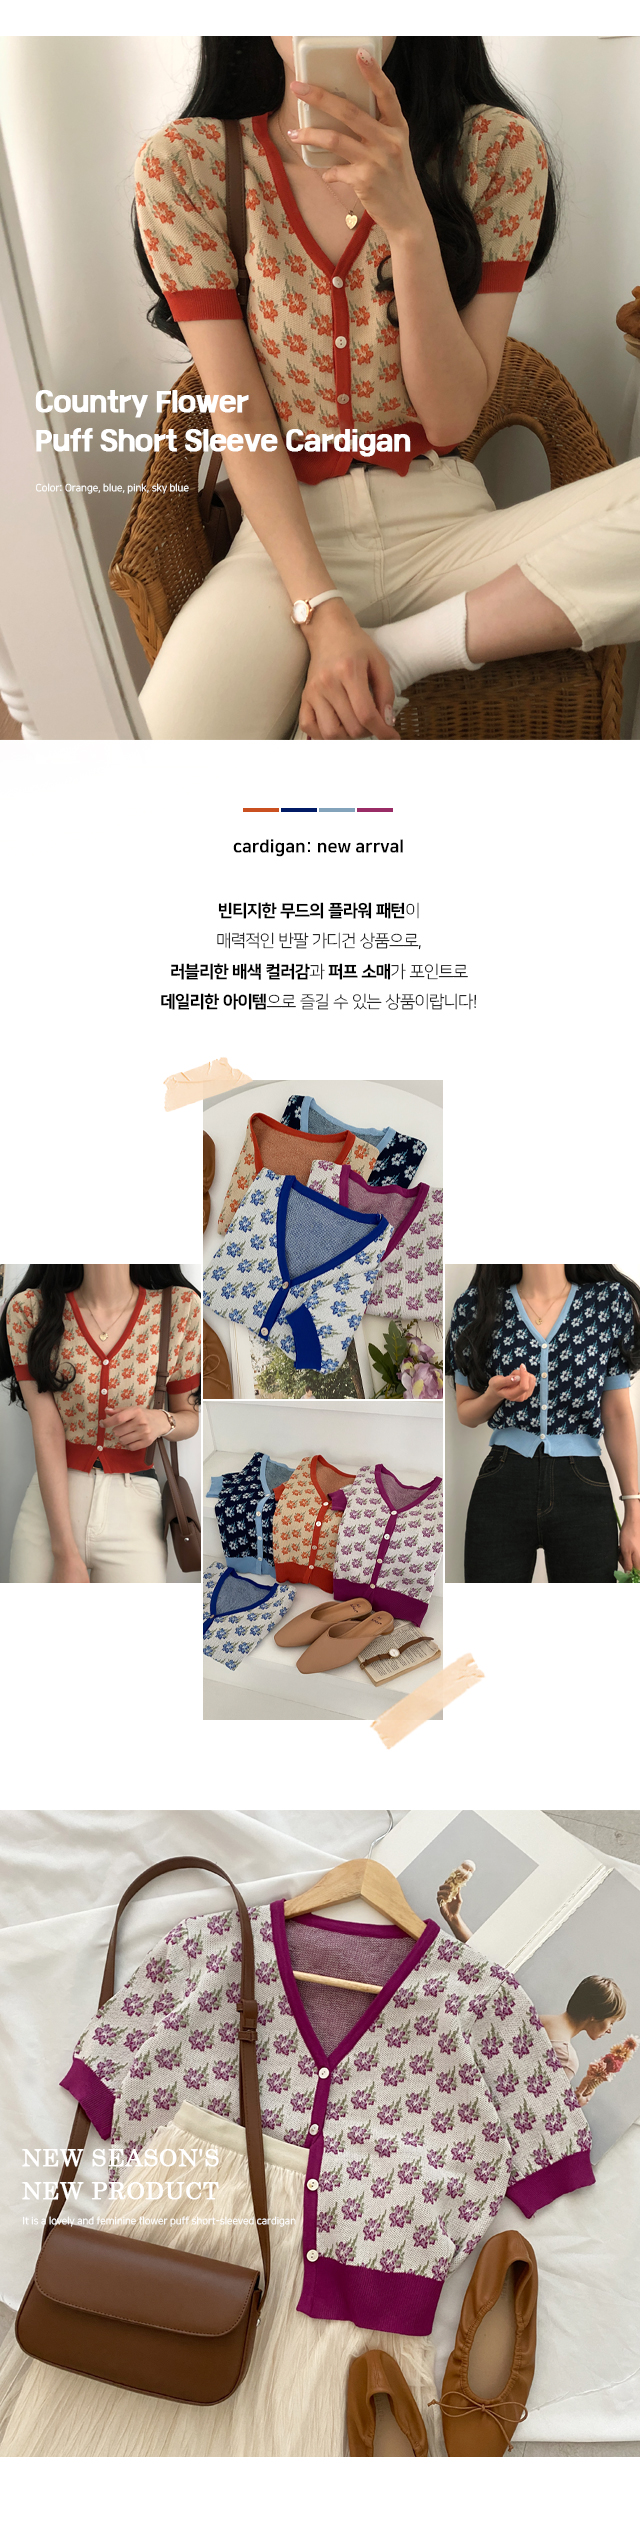 Country Flower Puff Short Sleeve Cardigan